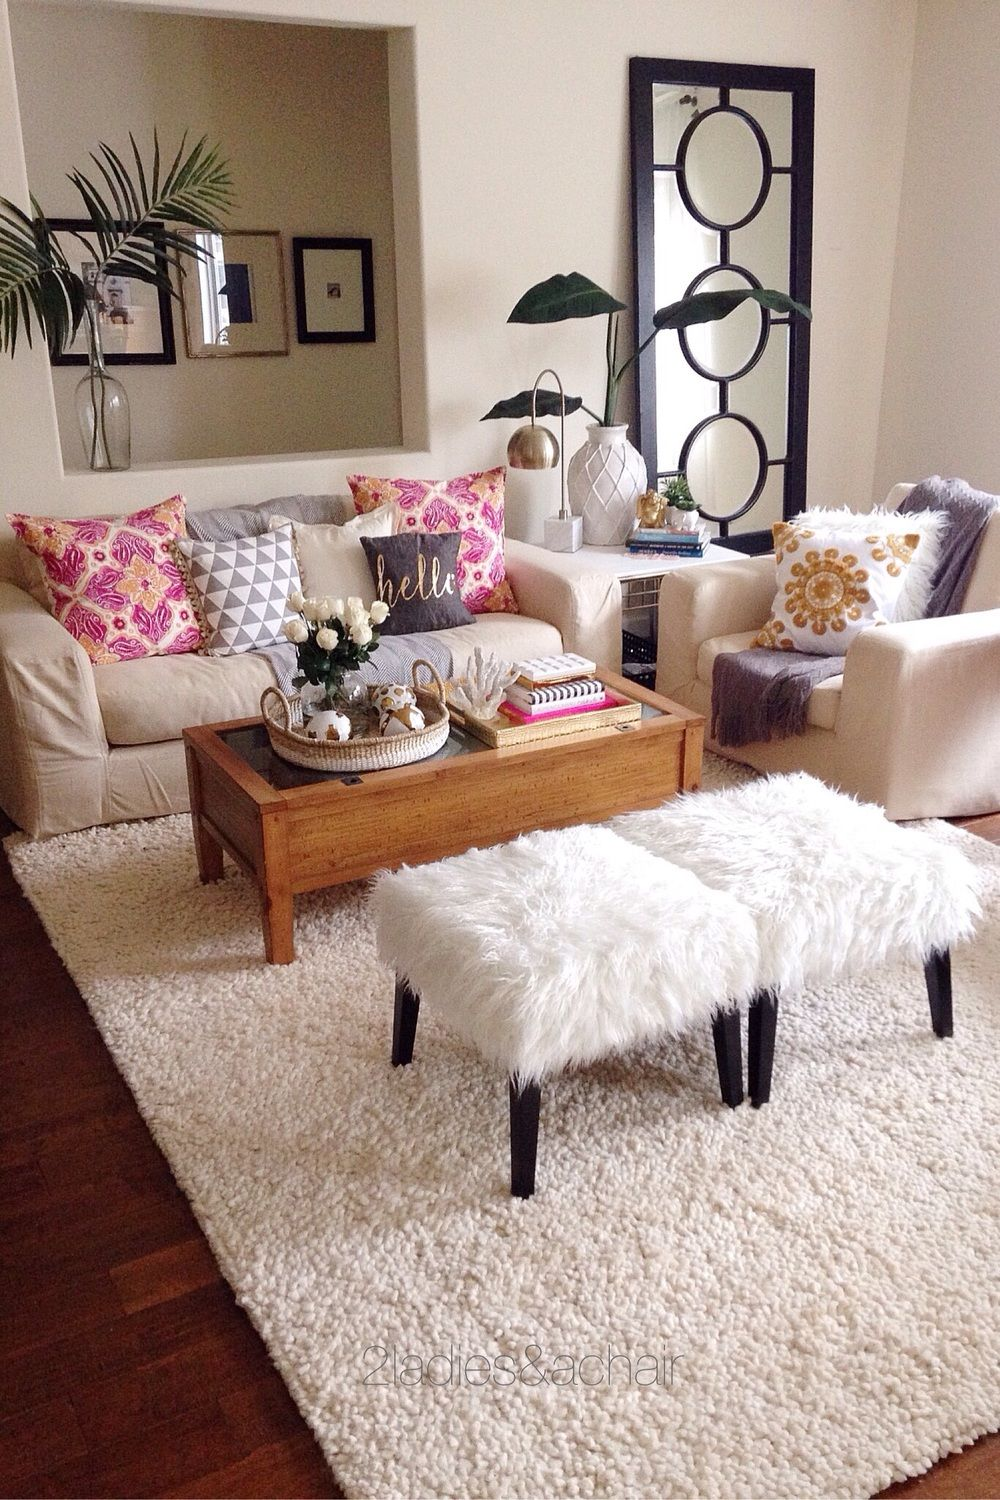 Decorating With Bright Colors Cute Living Room Apartment Living Room Small Apartment Decorating